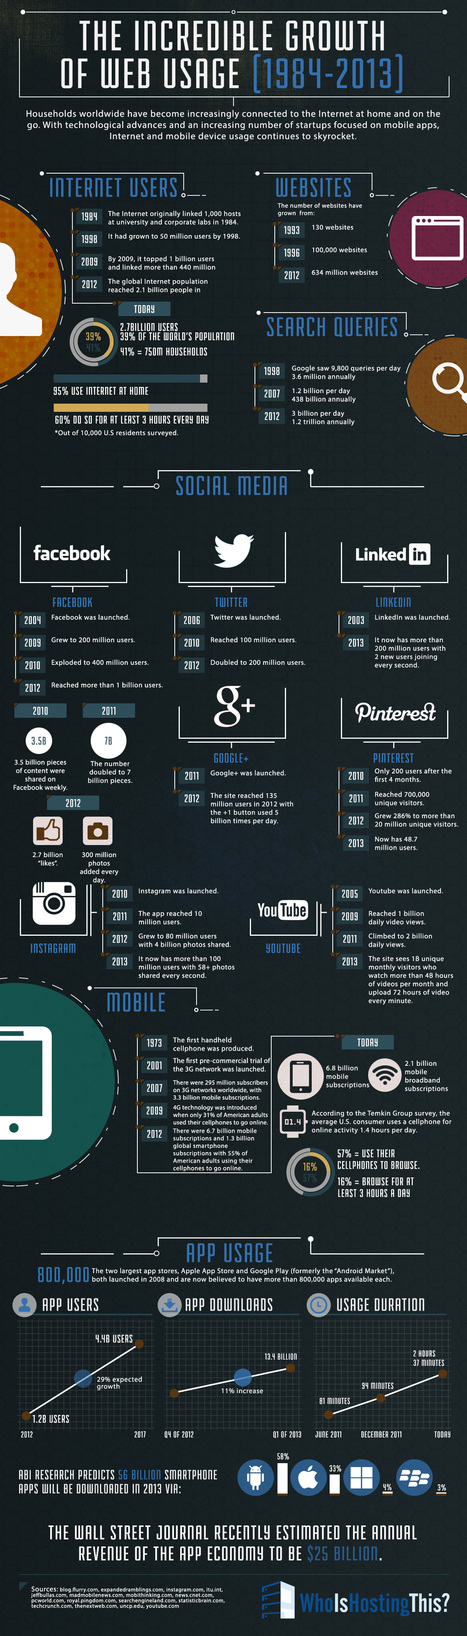 Infographic: The Incredible Growth of Web Usage [1984-2013] | Social Media in Manufacturing Today | Scoop.it